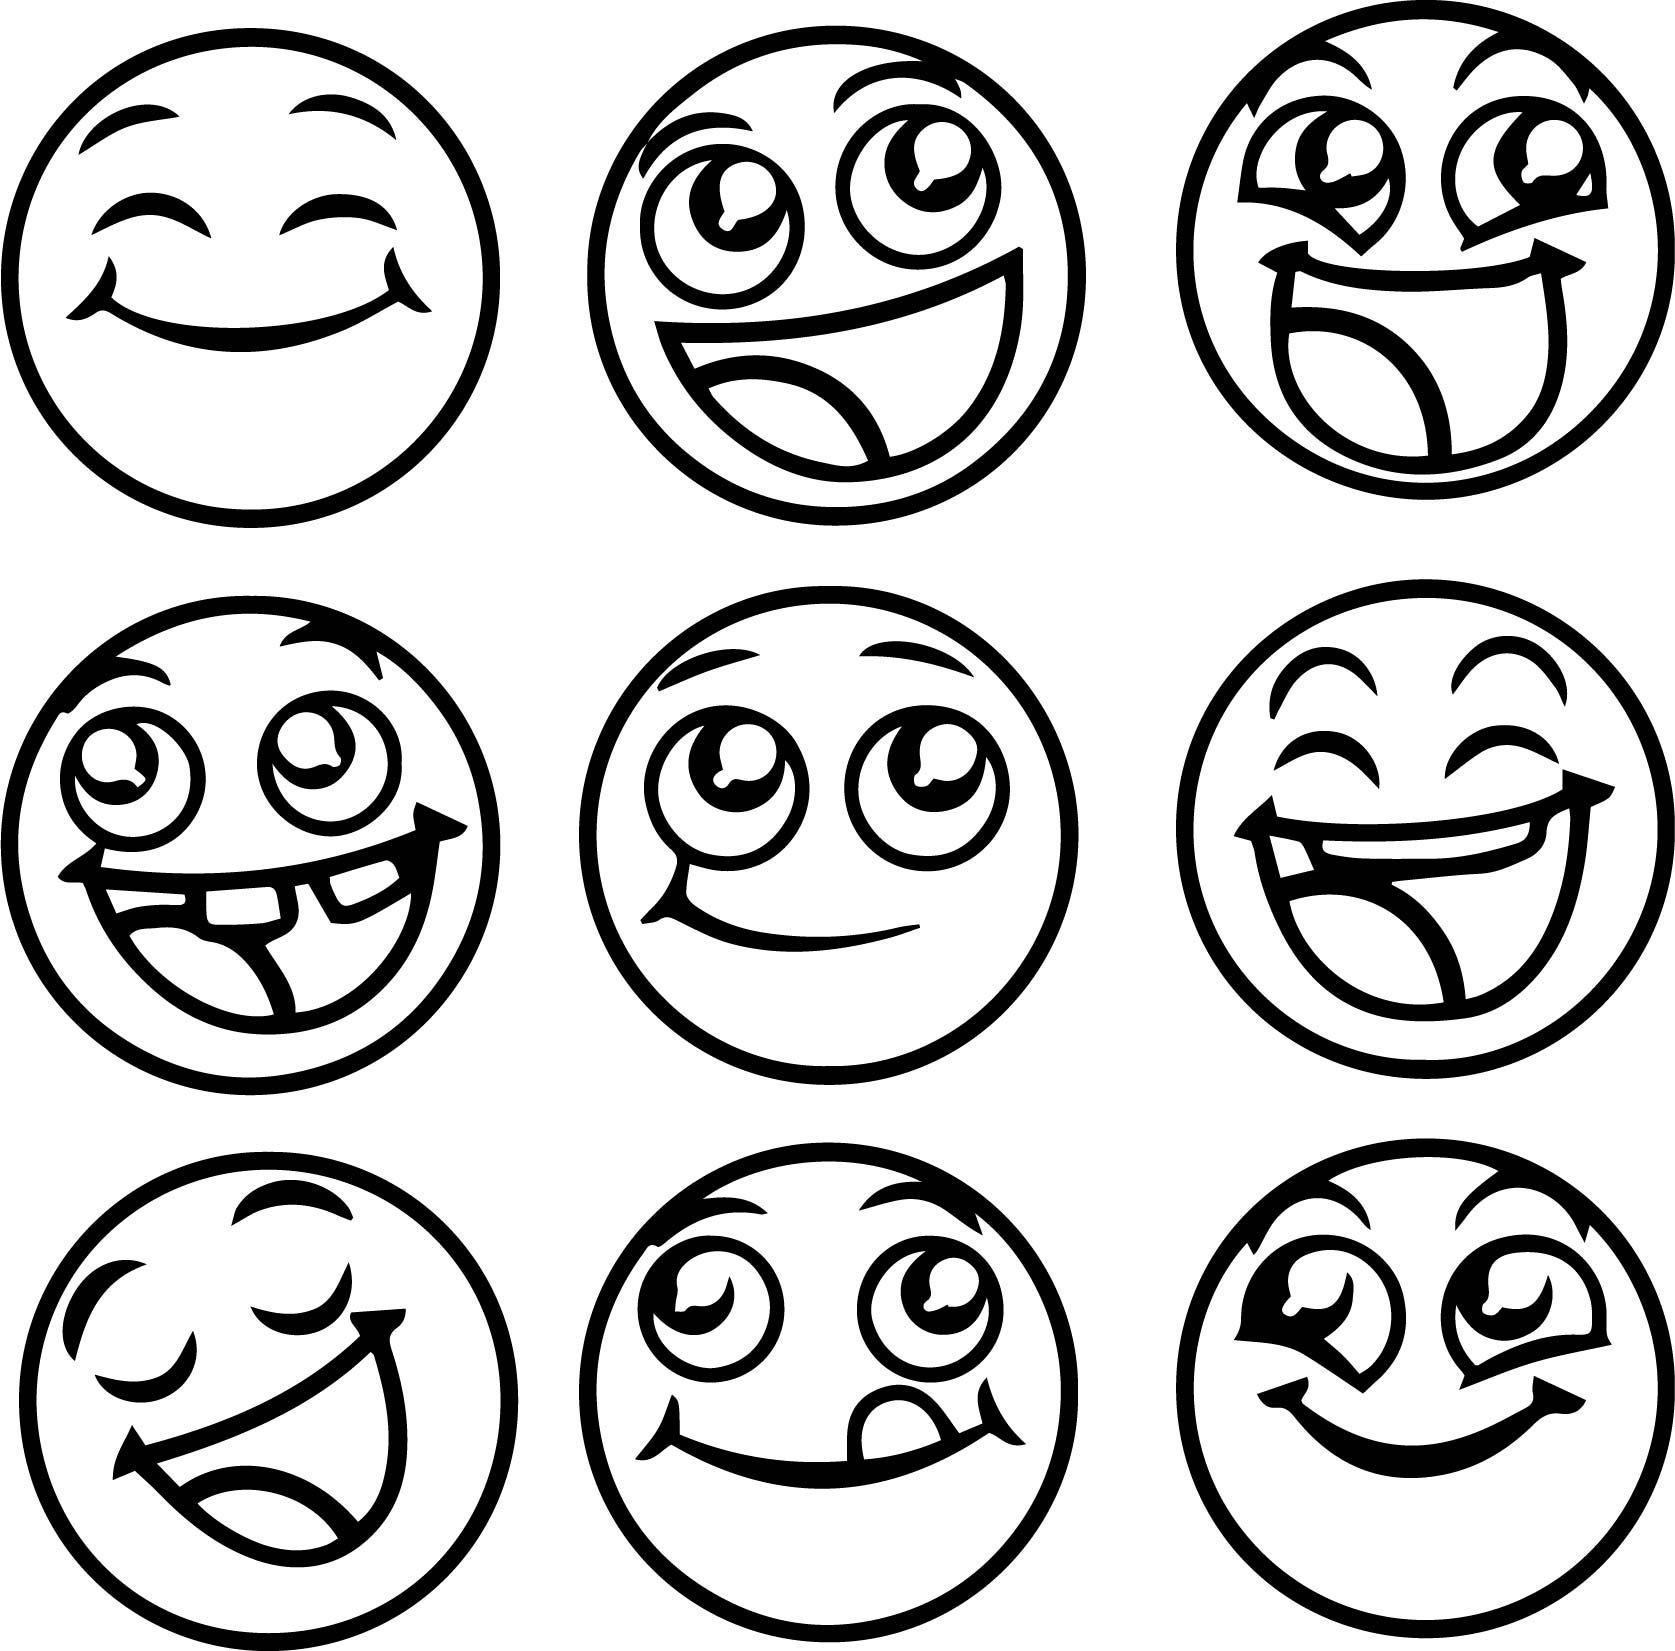 16 Printable Colouring Pages Emoji In